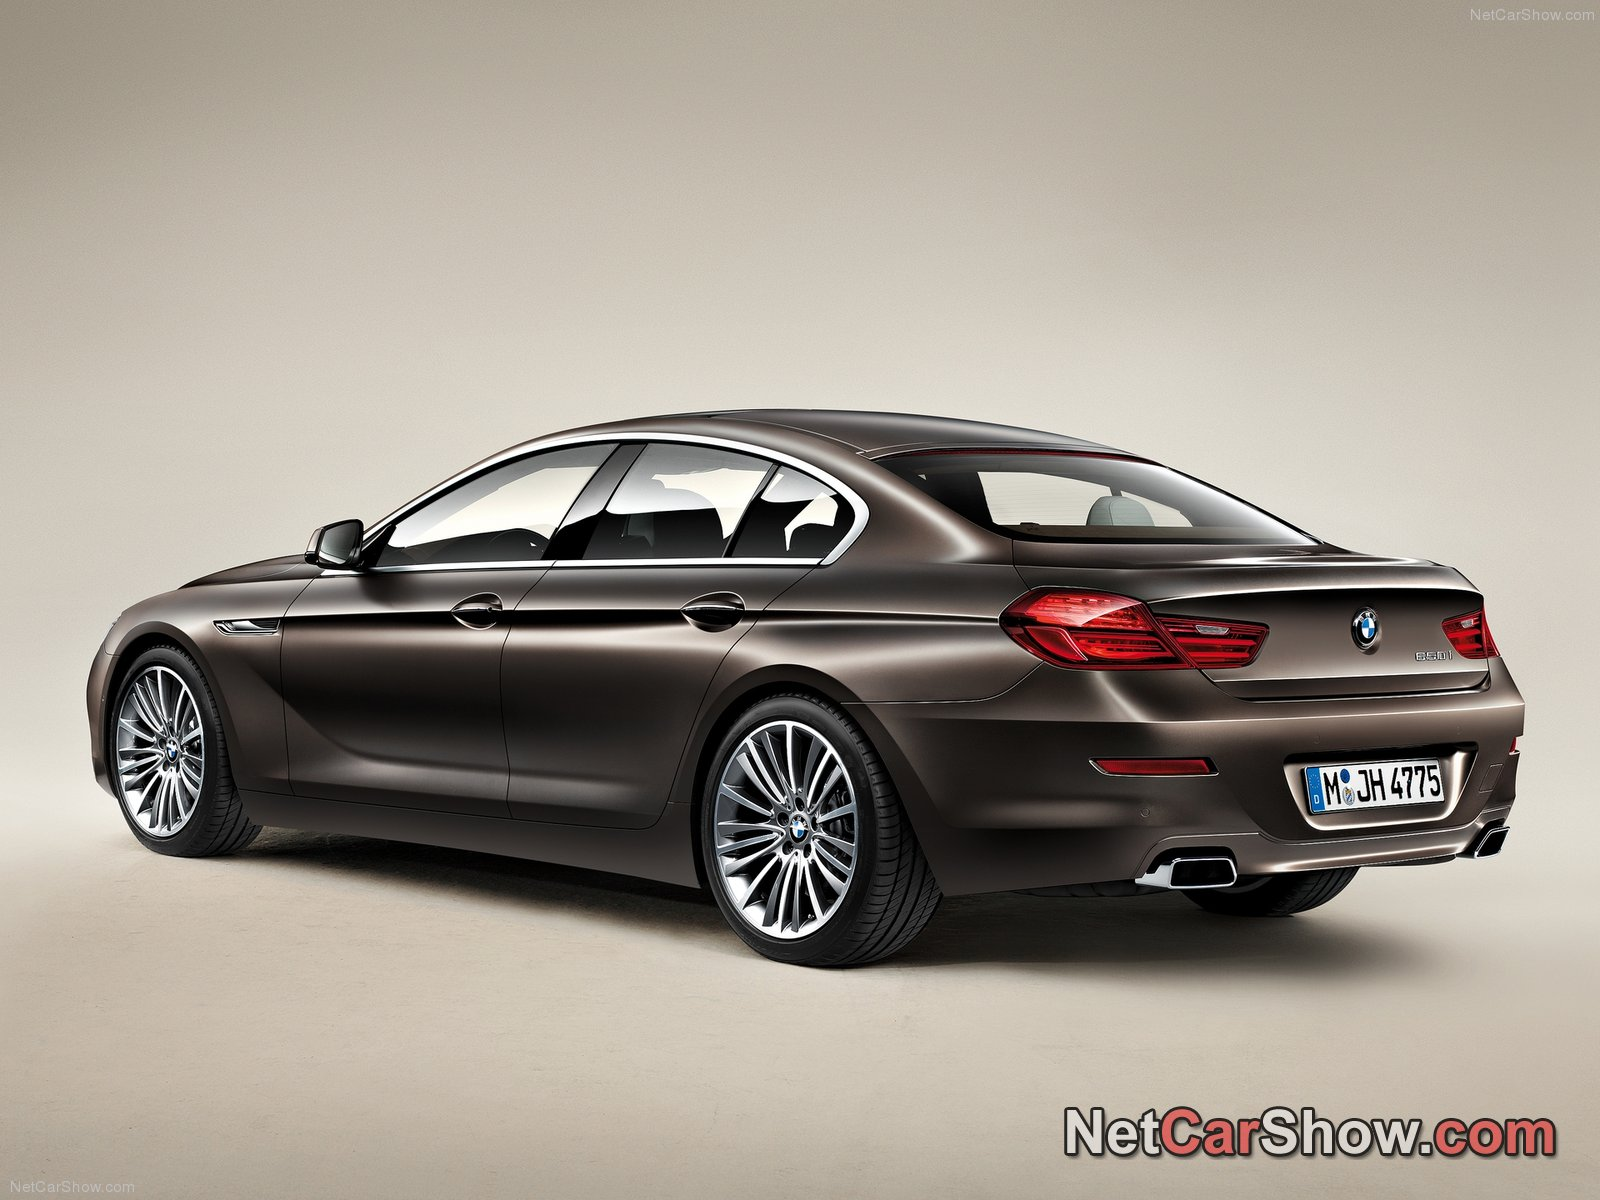 bmw 6 series gran coupe photos photo gallery page 8. Black Bedroom Furniture Sets. Home Design Ideas